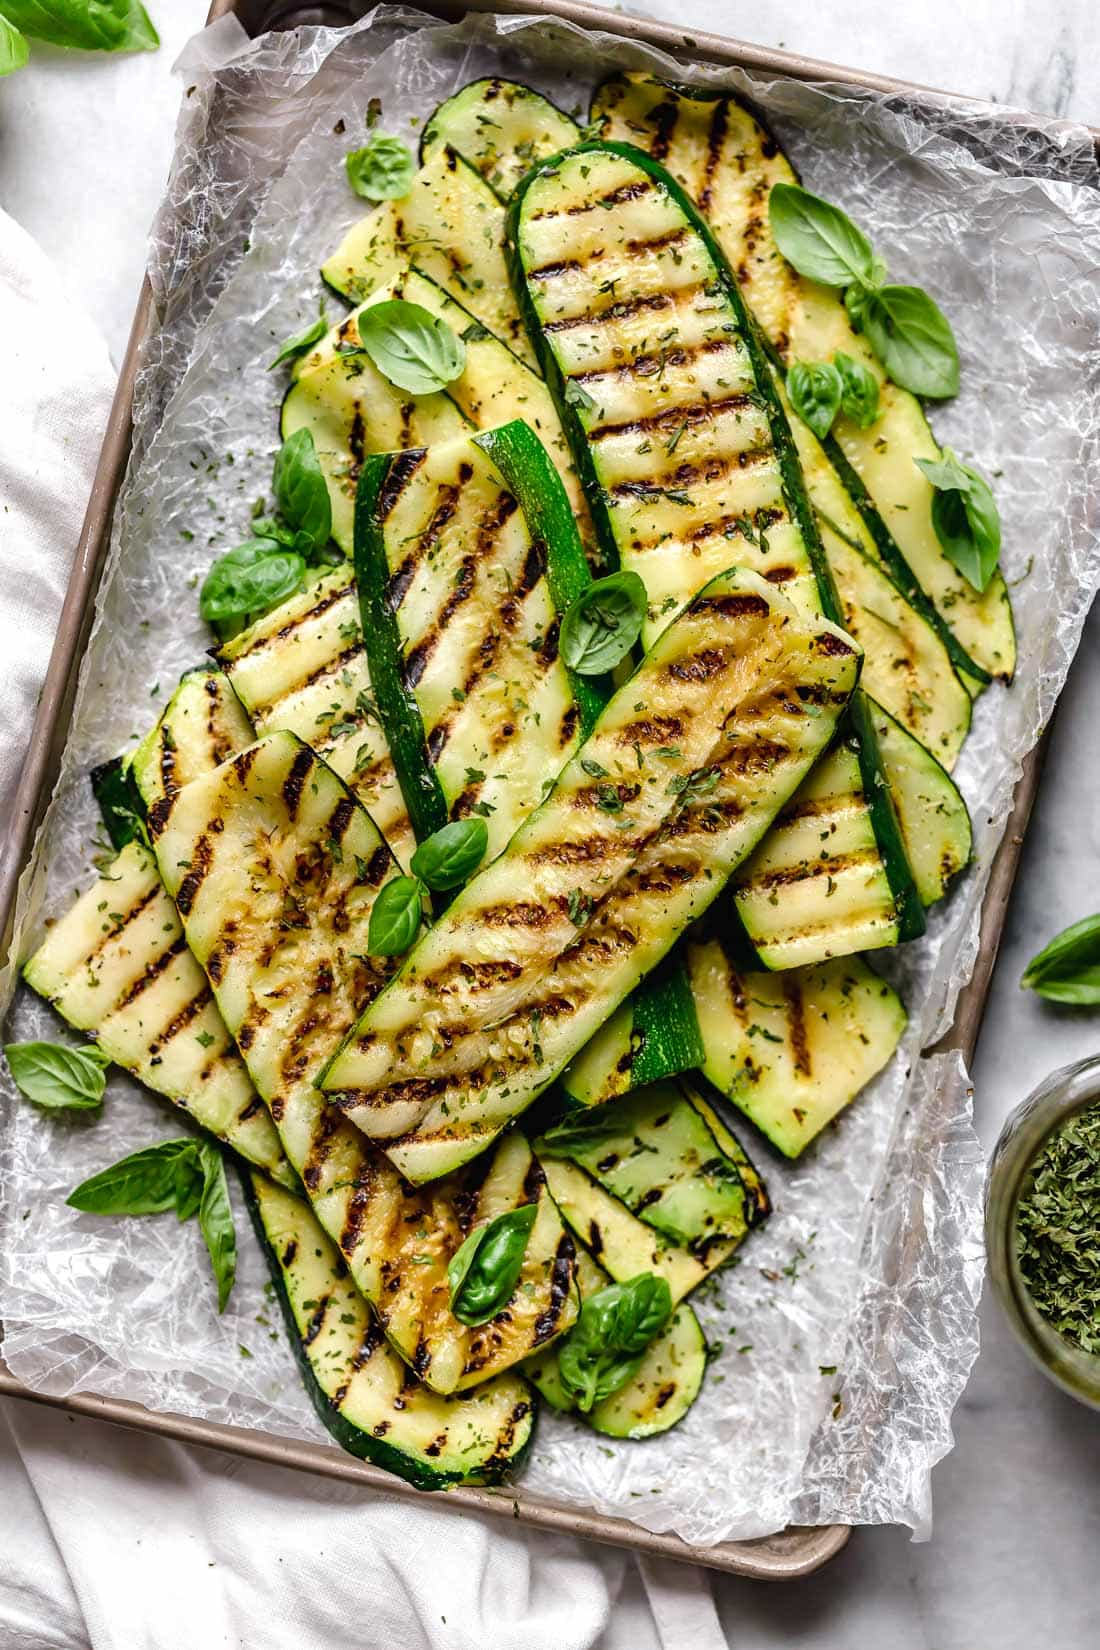 Make Perfect Grilled Zucchini all summer long! Quick and easy, great as a side dish with anything you're grilling.